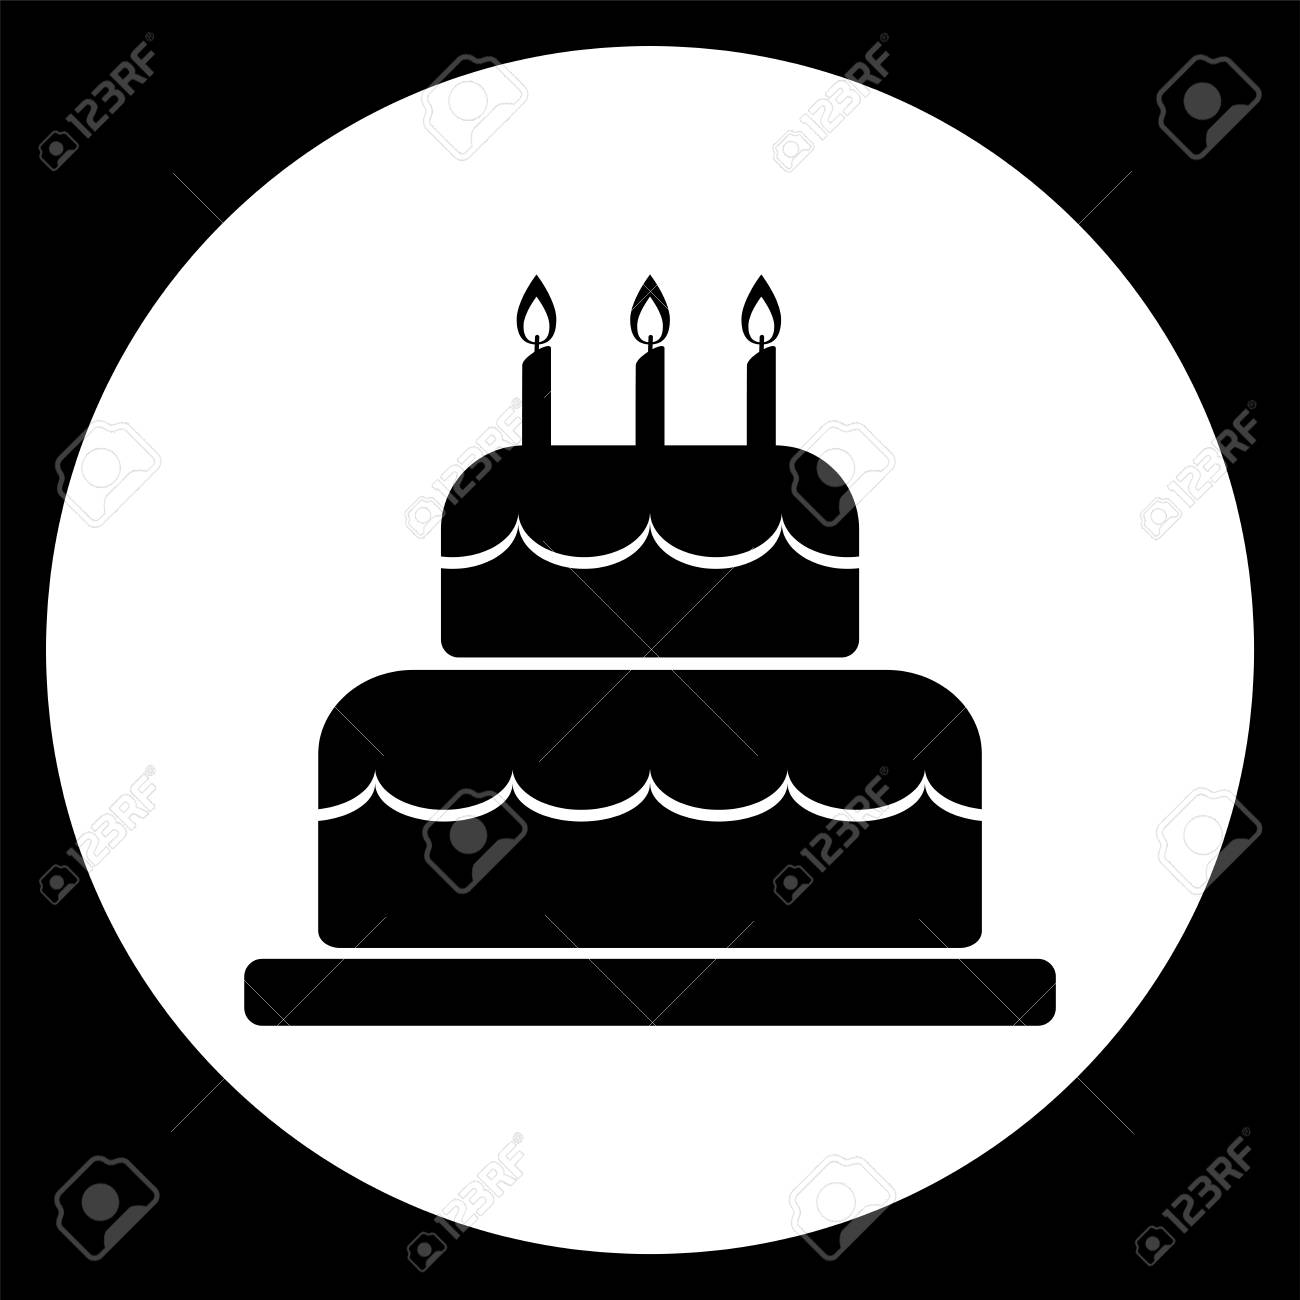 Vector Illustration Of Birthday Cake Icon In Black On White Circle